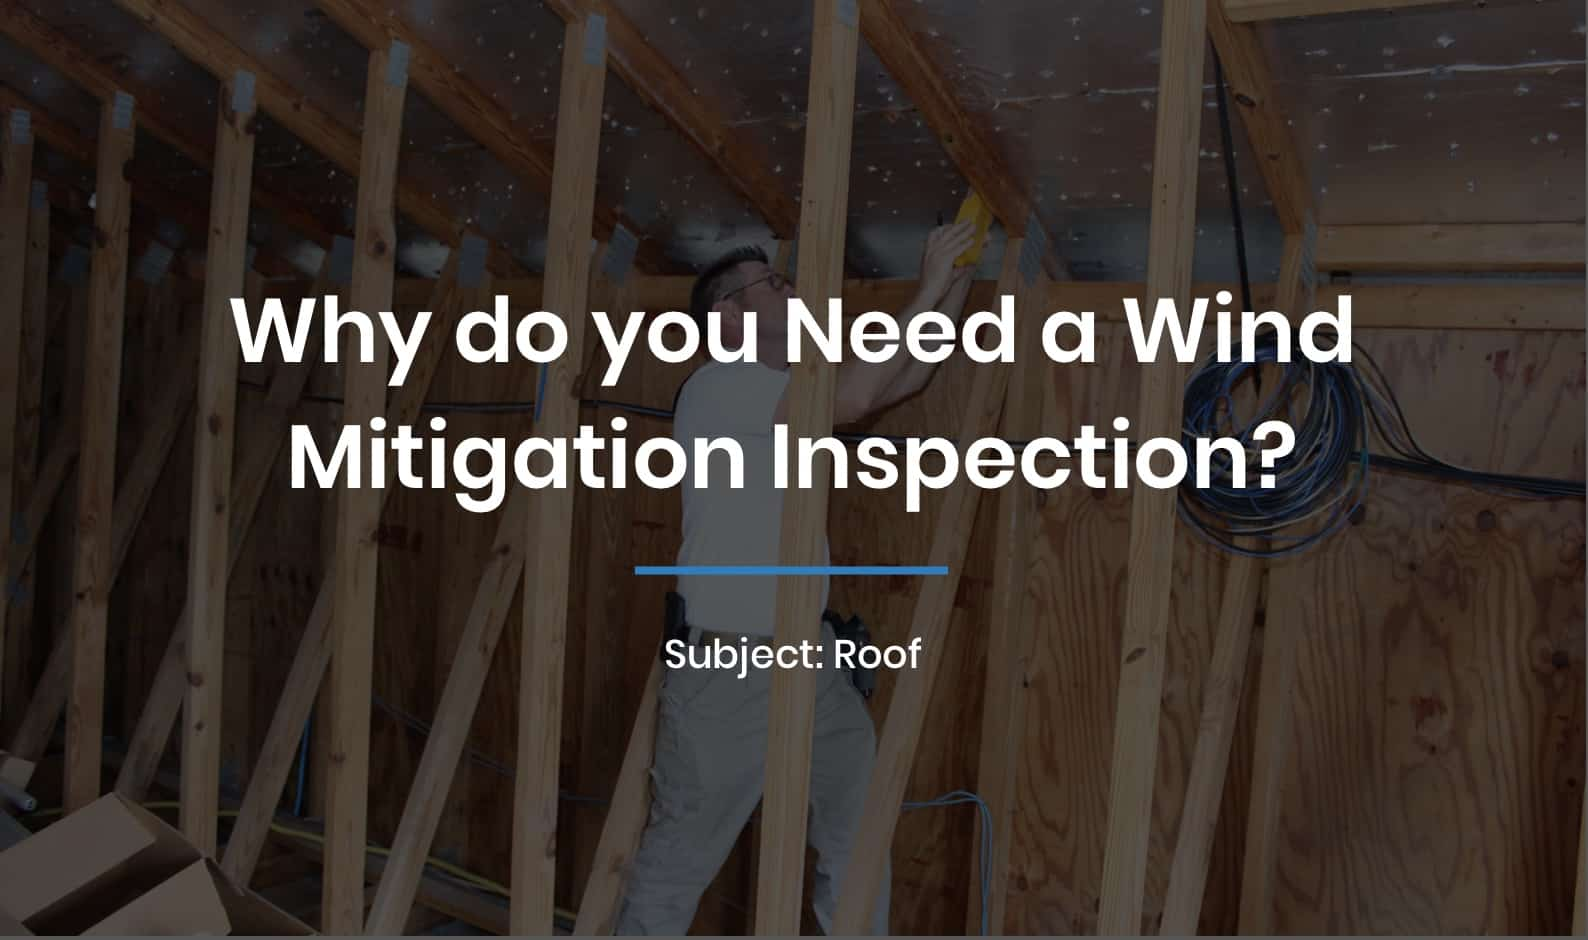 Why do you Need a Wind Mitigation Inspection?